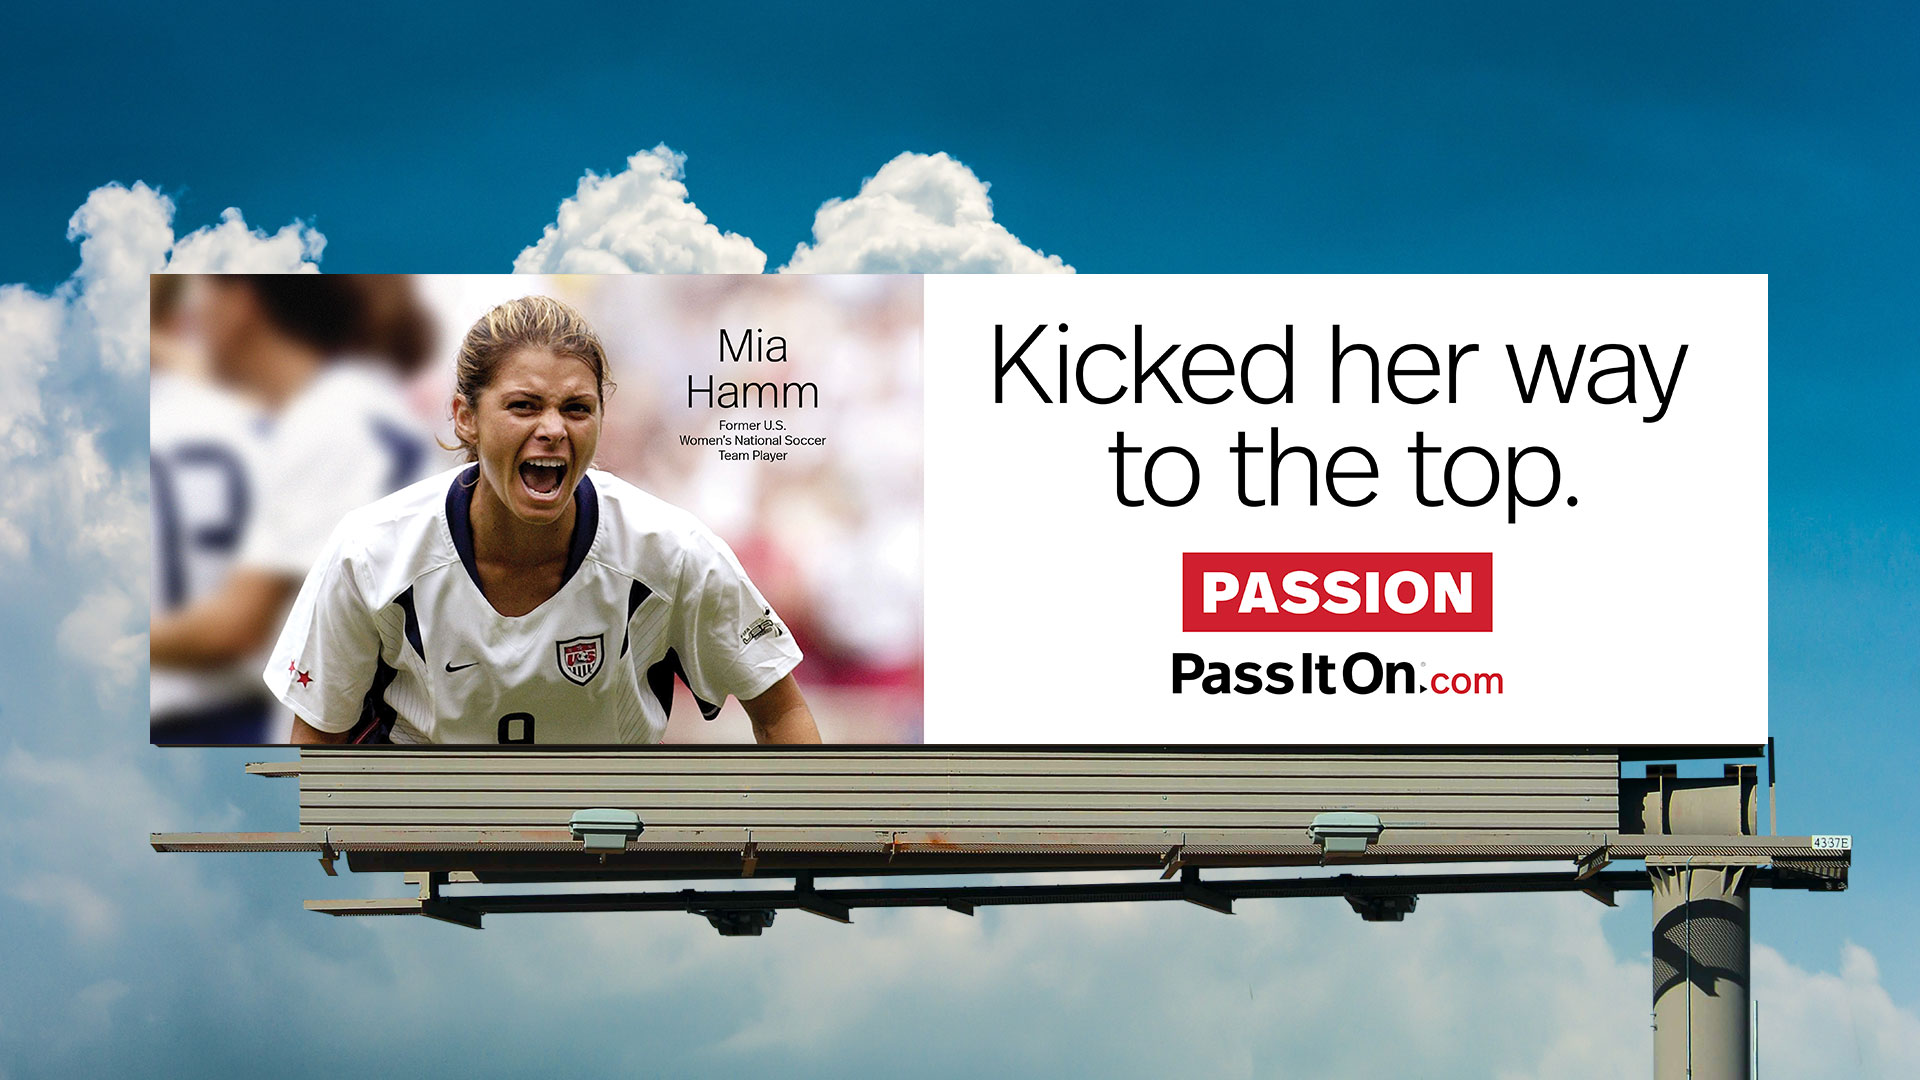 Passion mia hamm